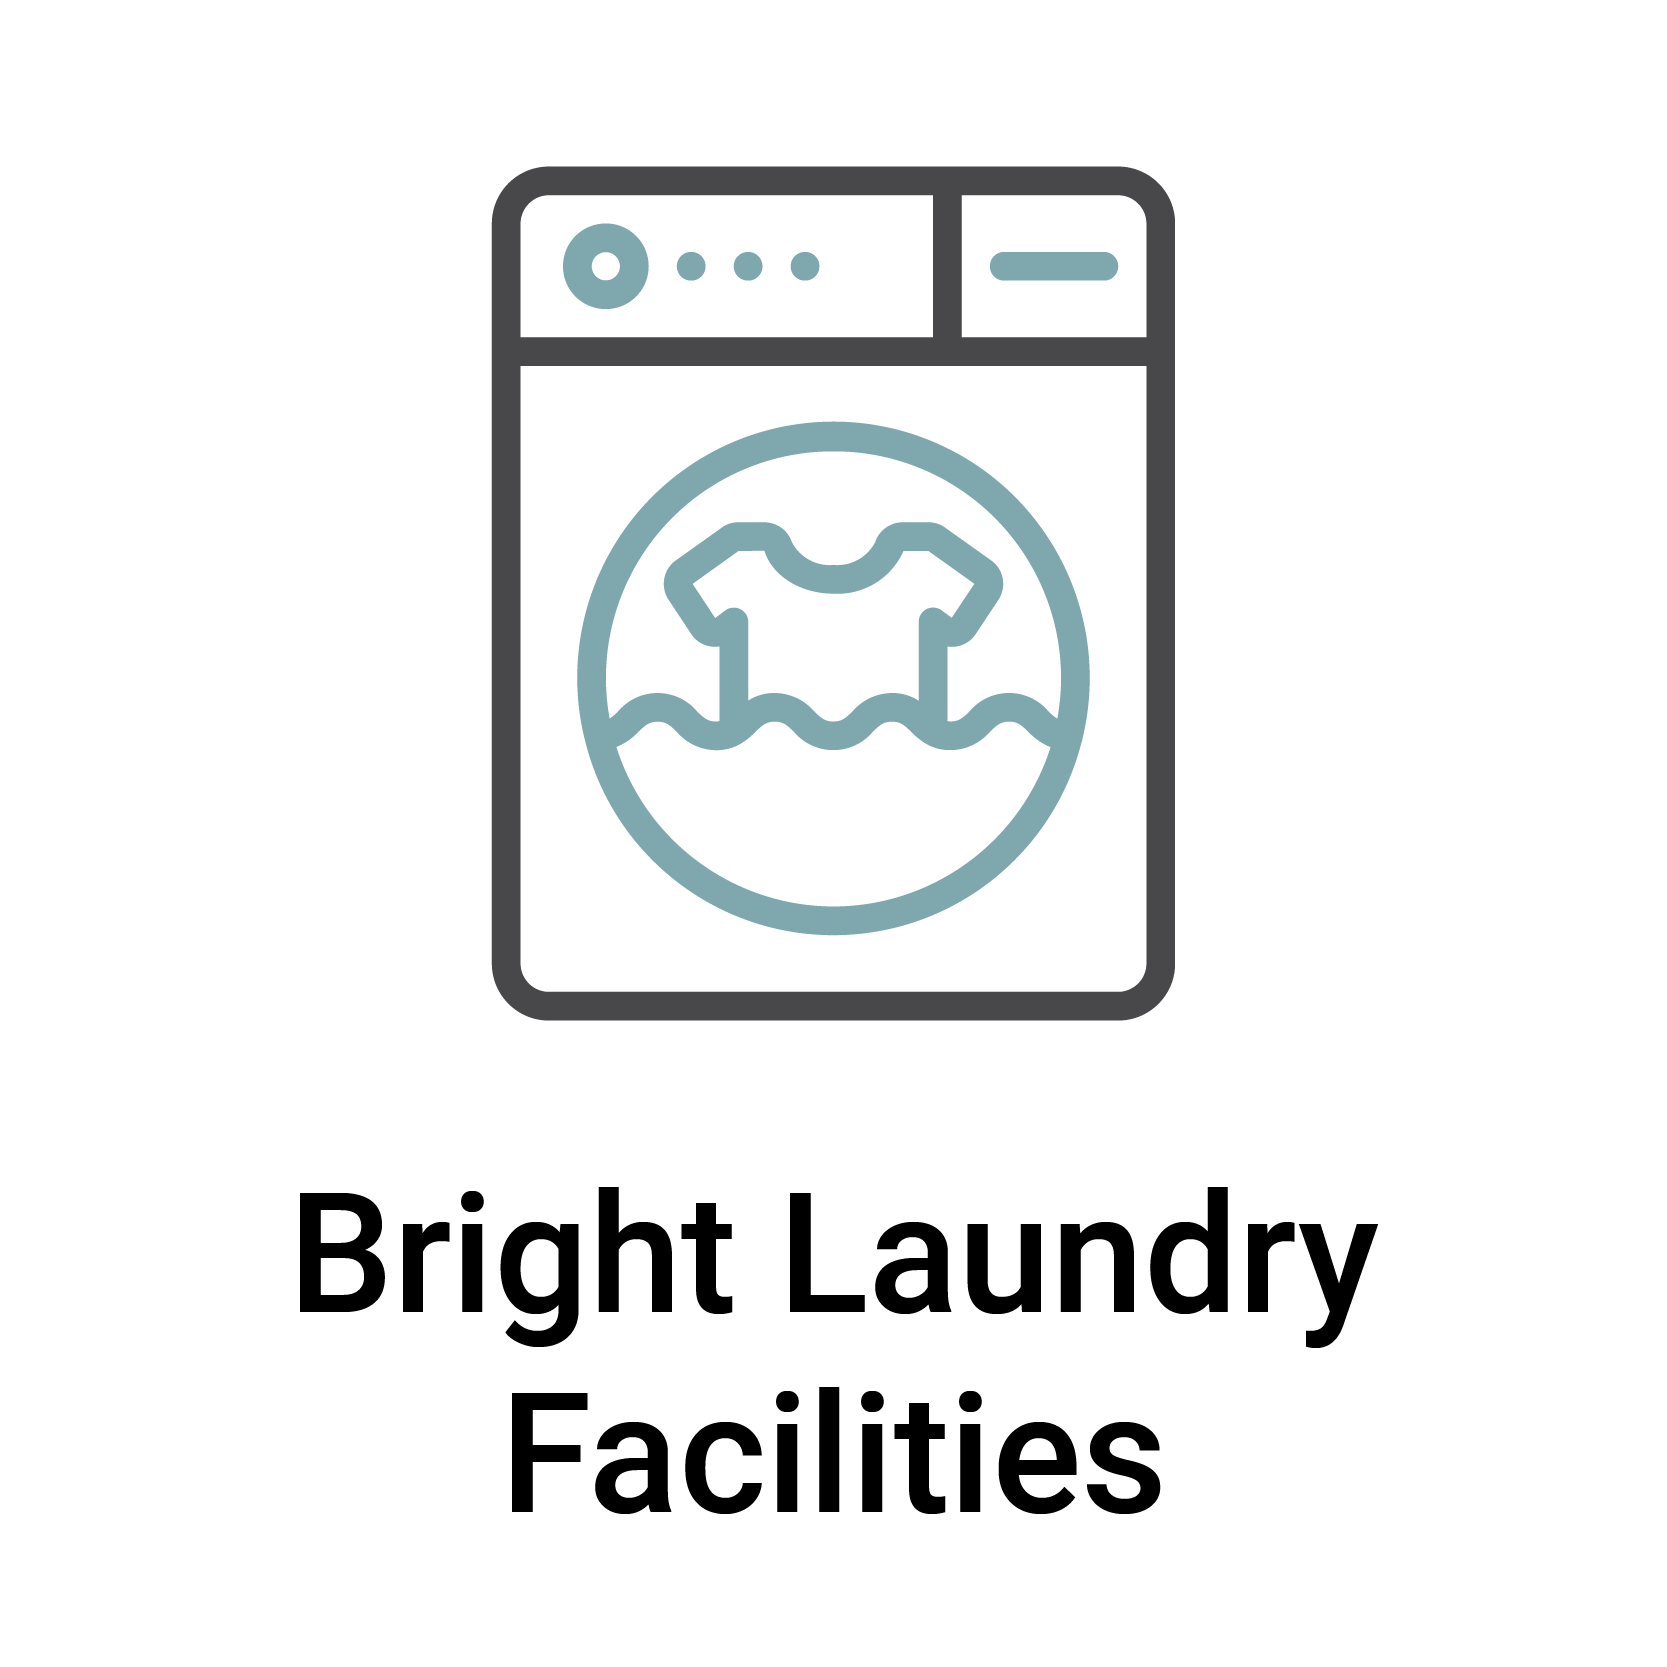 Bright Laundry Facilities